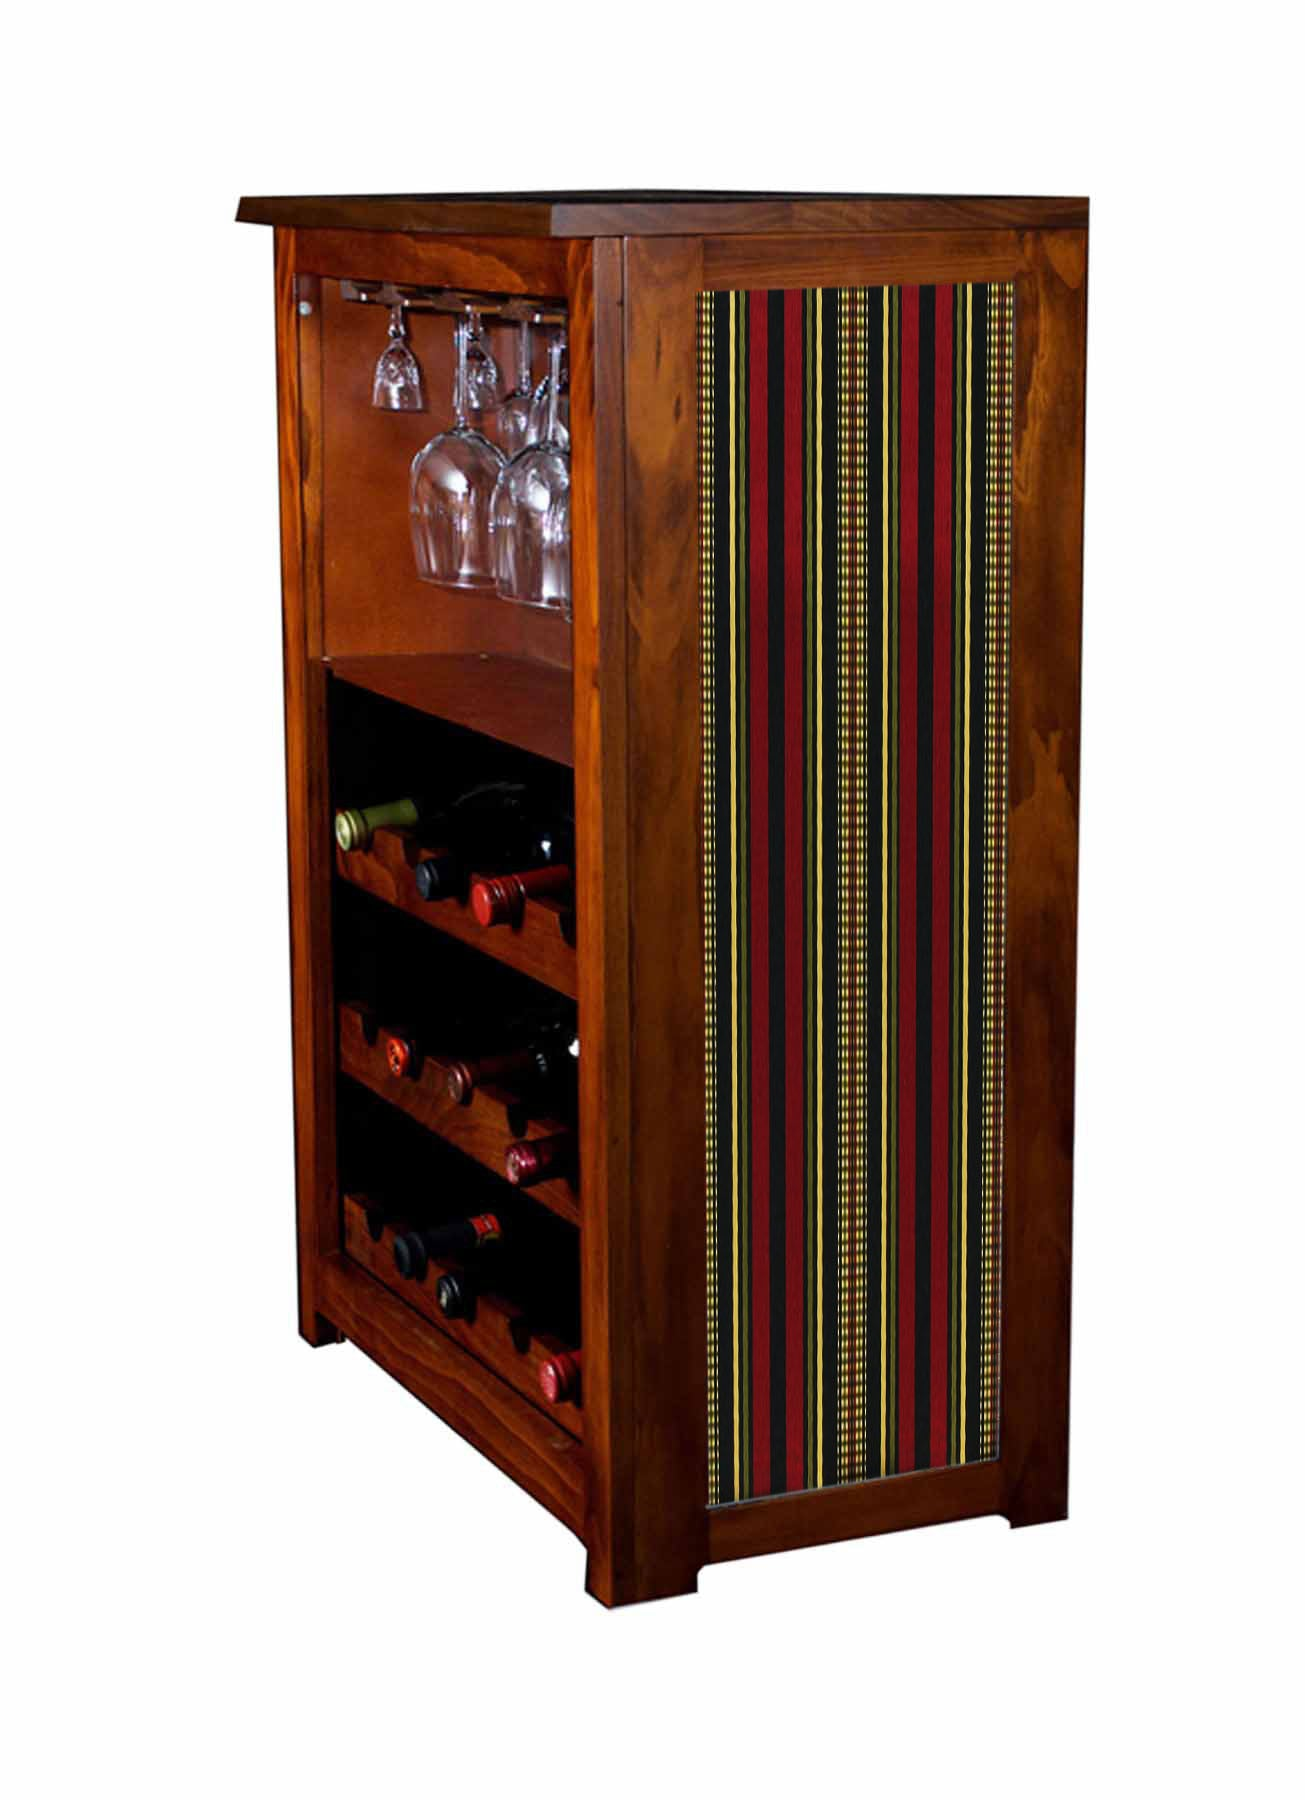 Wine Cabinet with Channing fabric